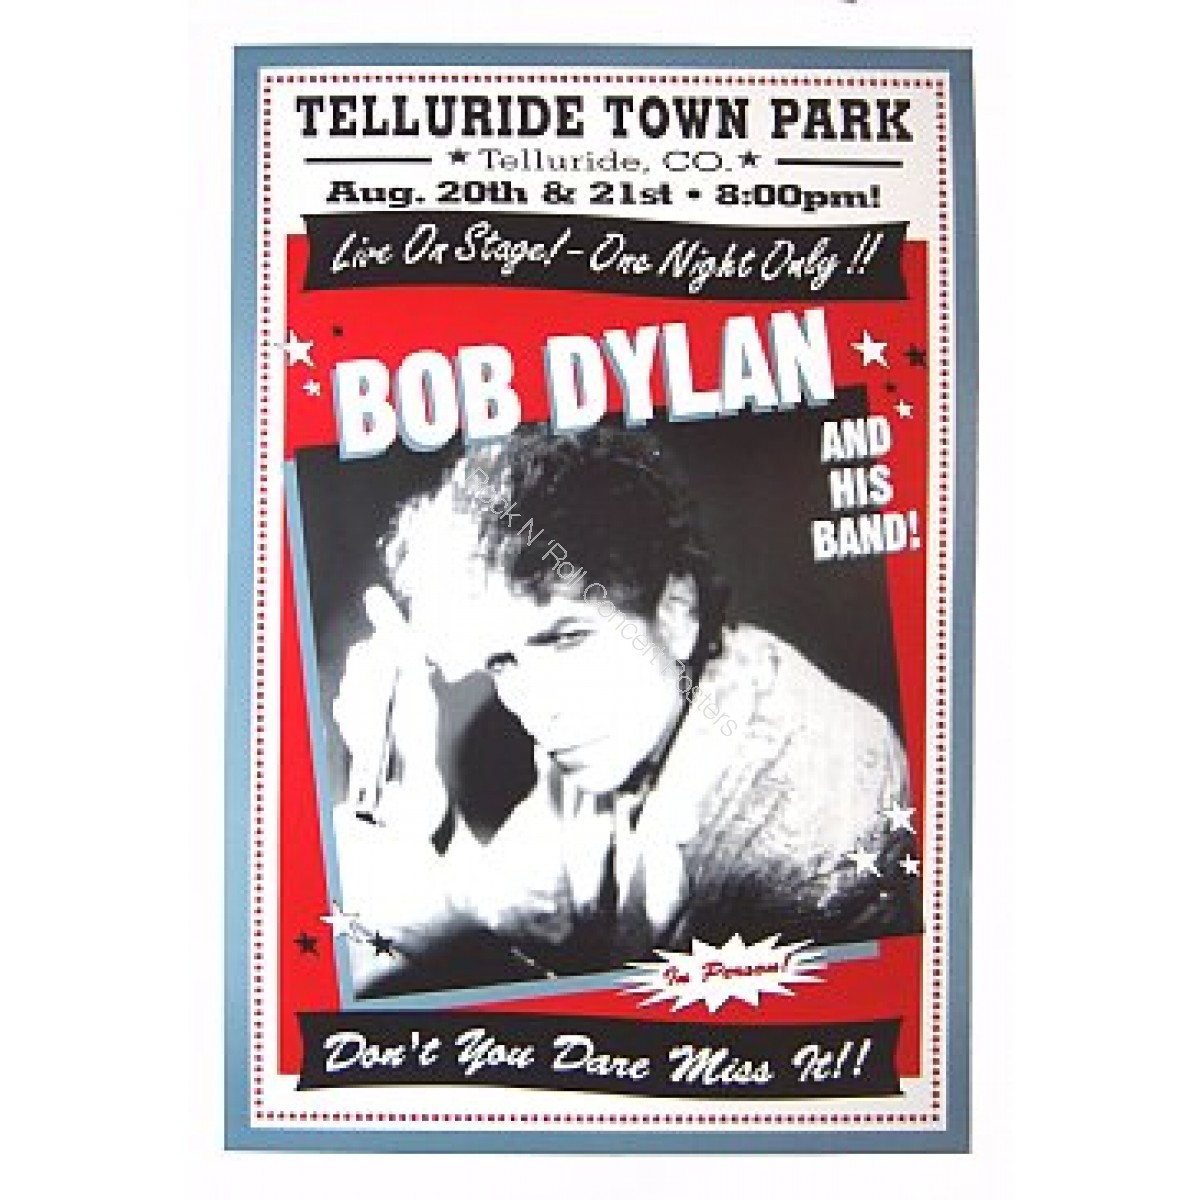 Bob Dylan & His Band Town Park Telluride CO.